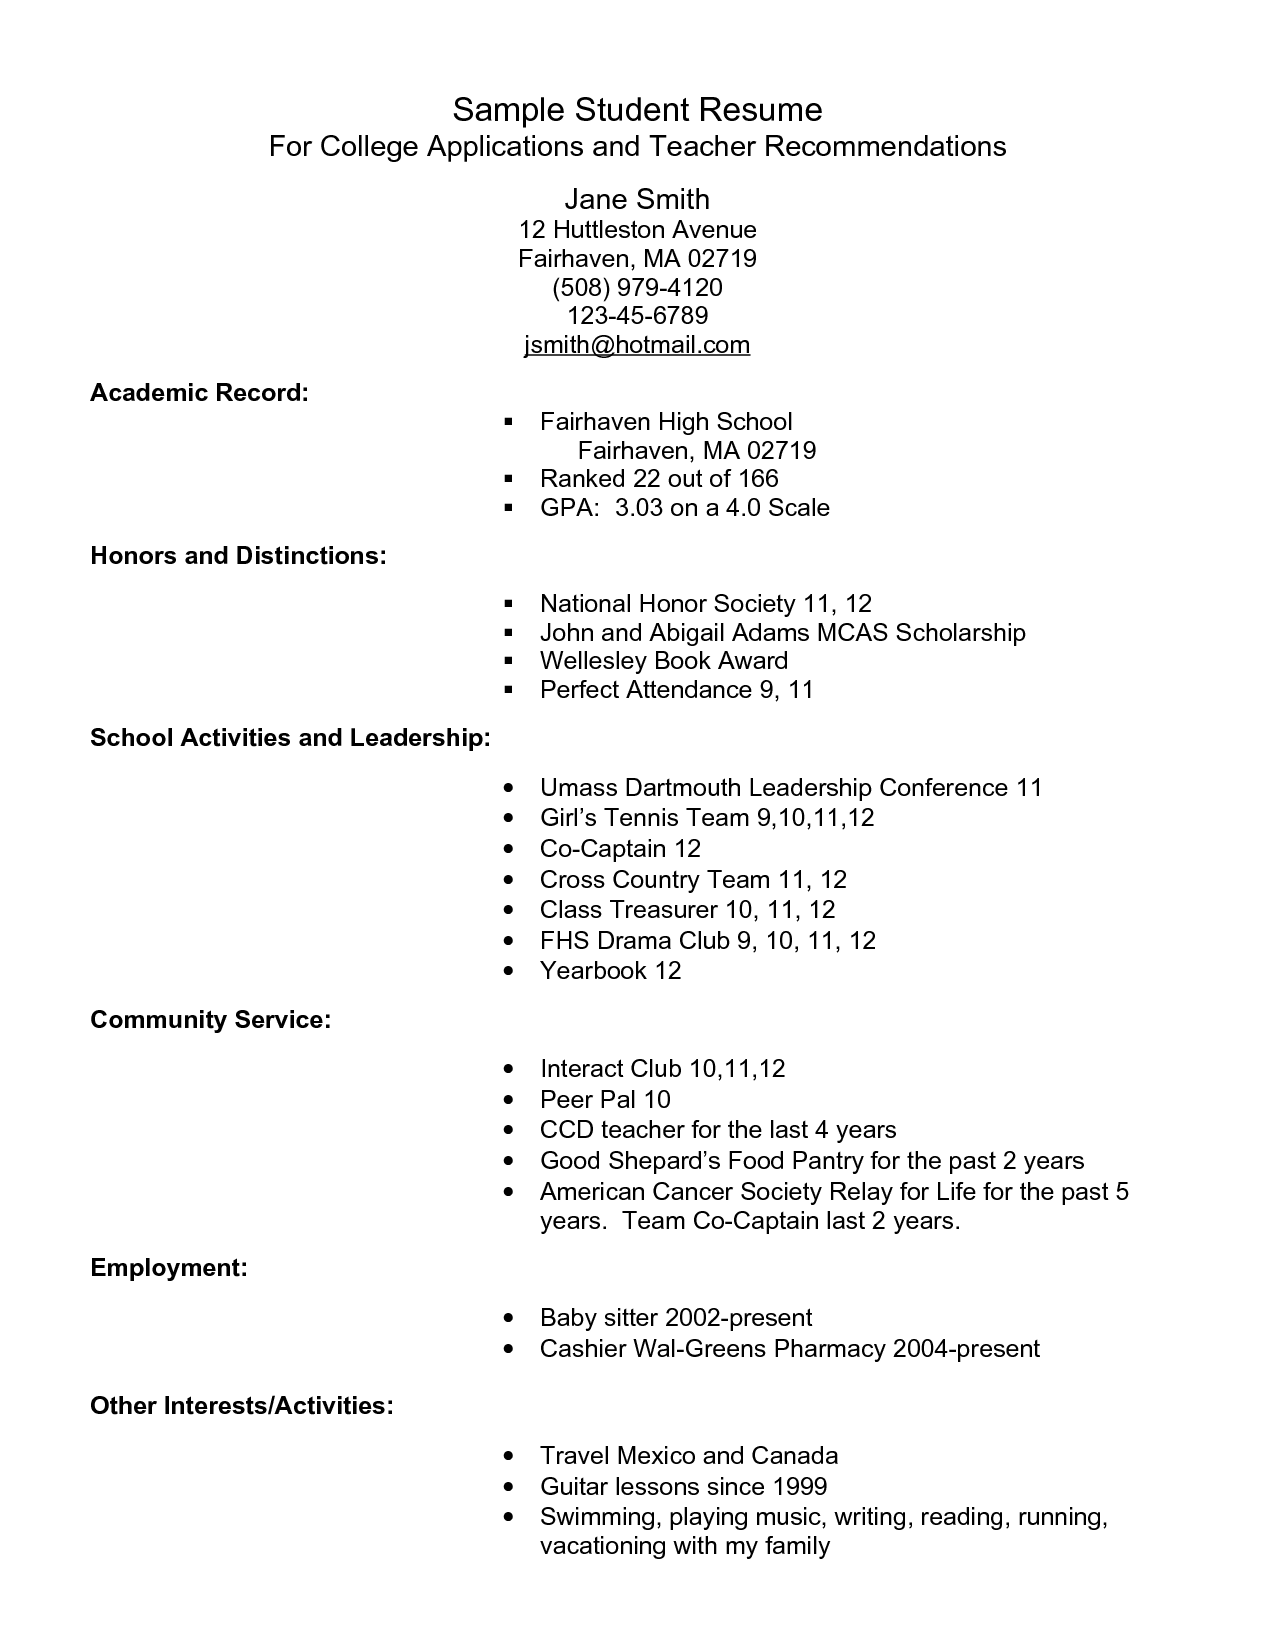 School Resume Template Example Resume For High School Students For College Applications